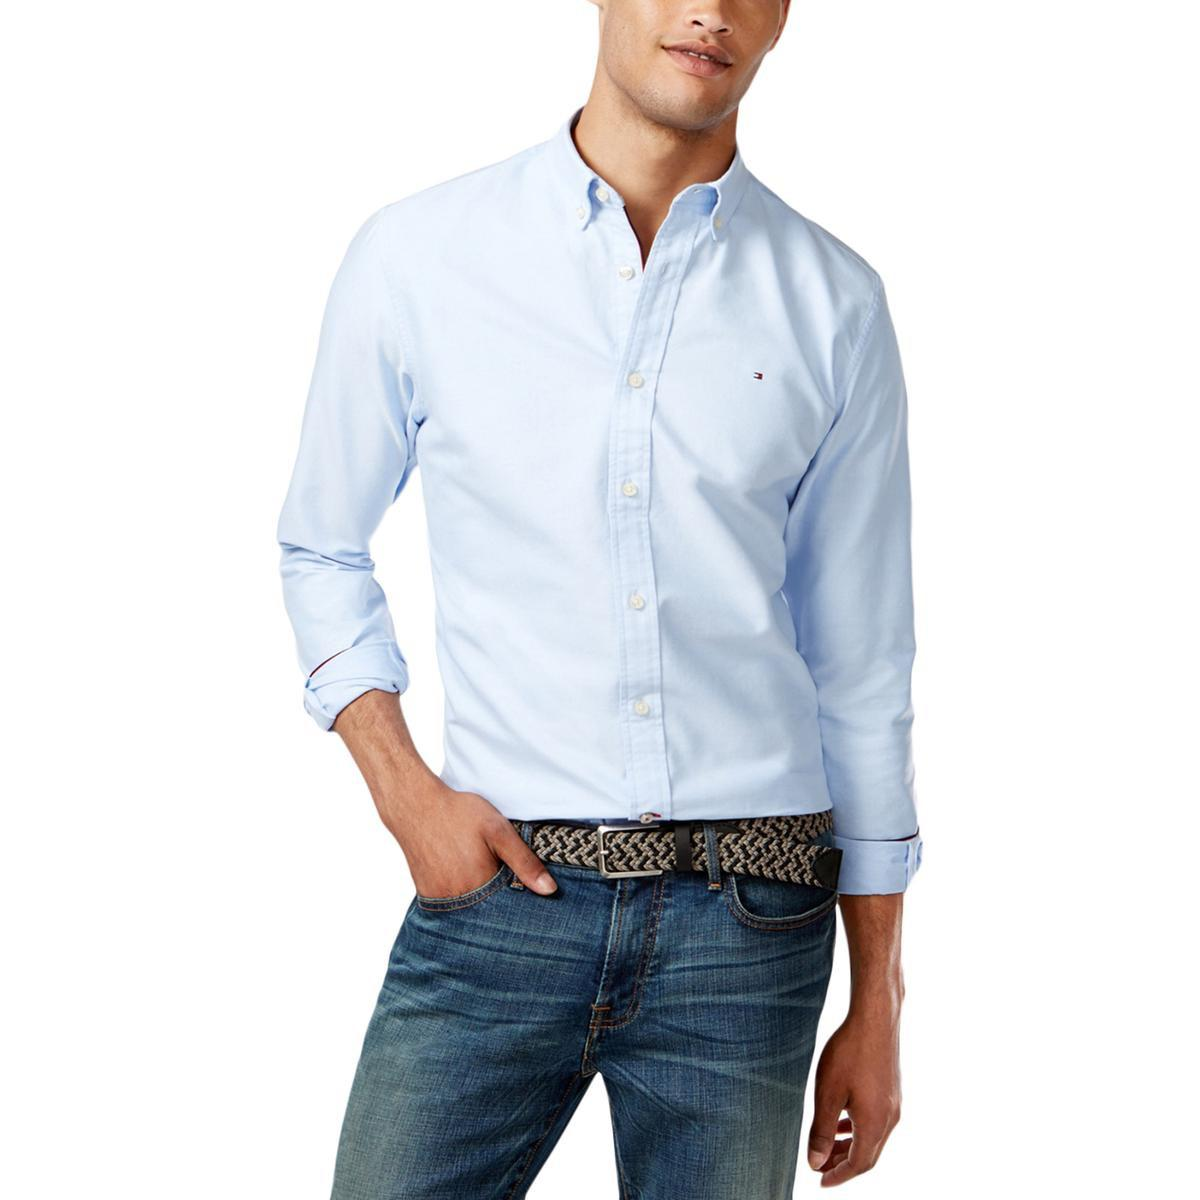 853e4707 Lyst - Tommy Hilfiger Custom Fit Heathered Button-down Shirt in Blue ...